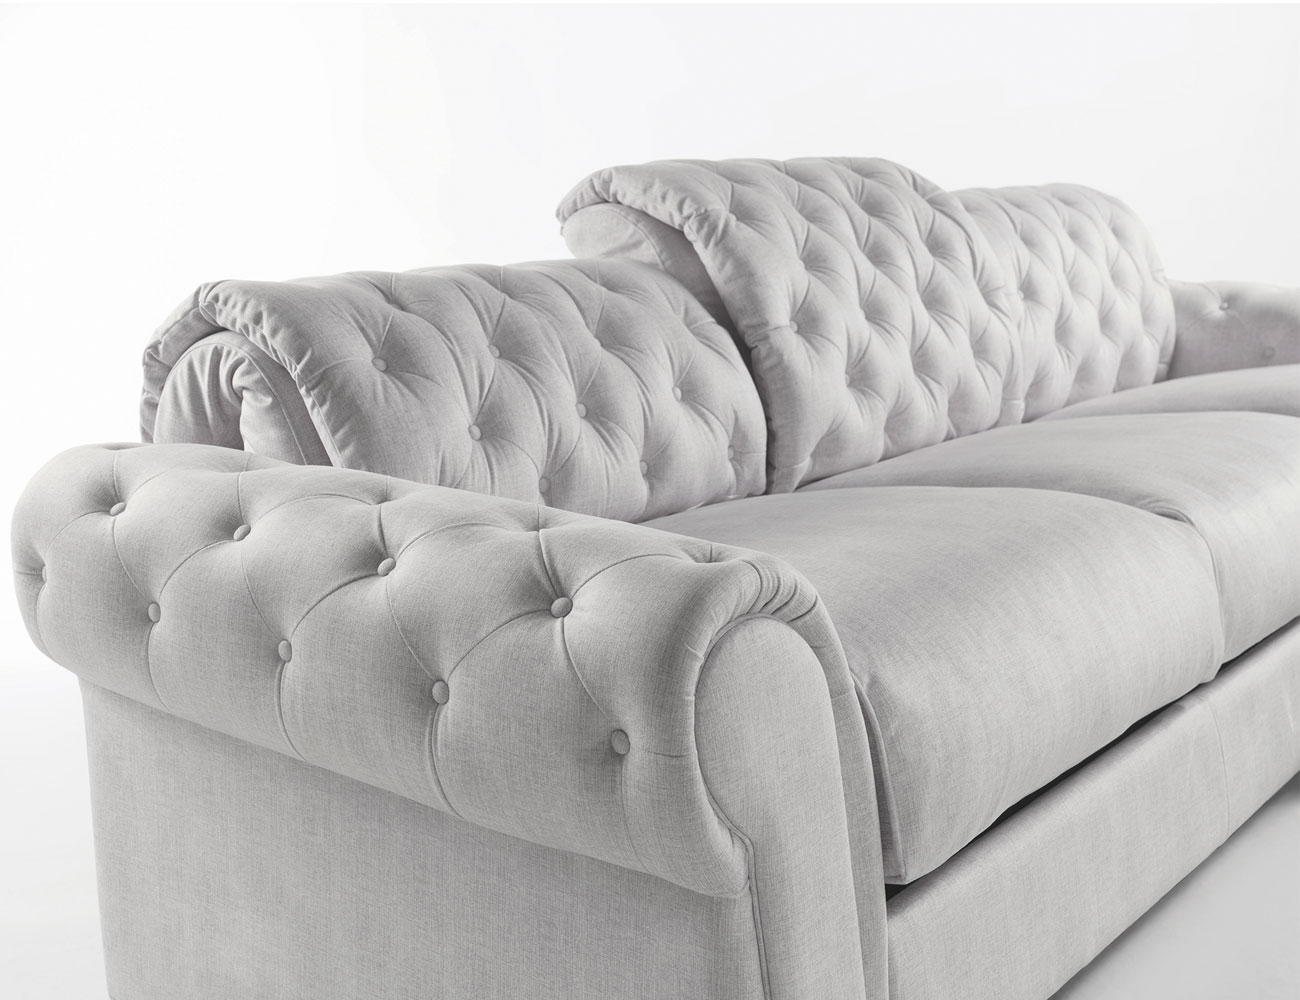 Sofa chaiselongue gran lujo decorativo capitone blanco tela 143